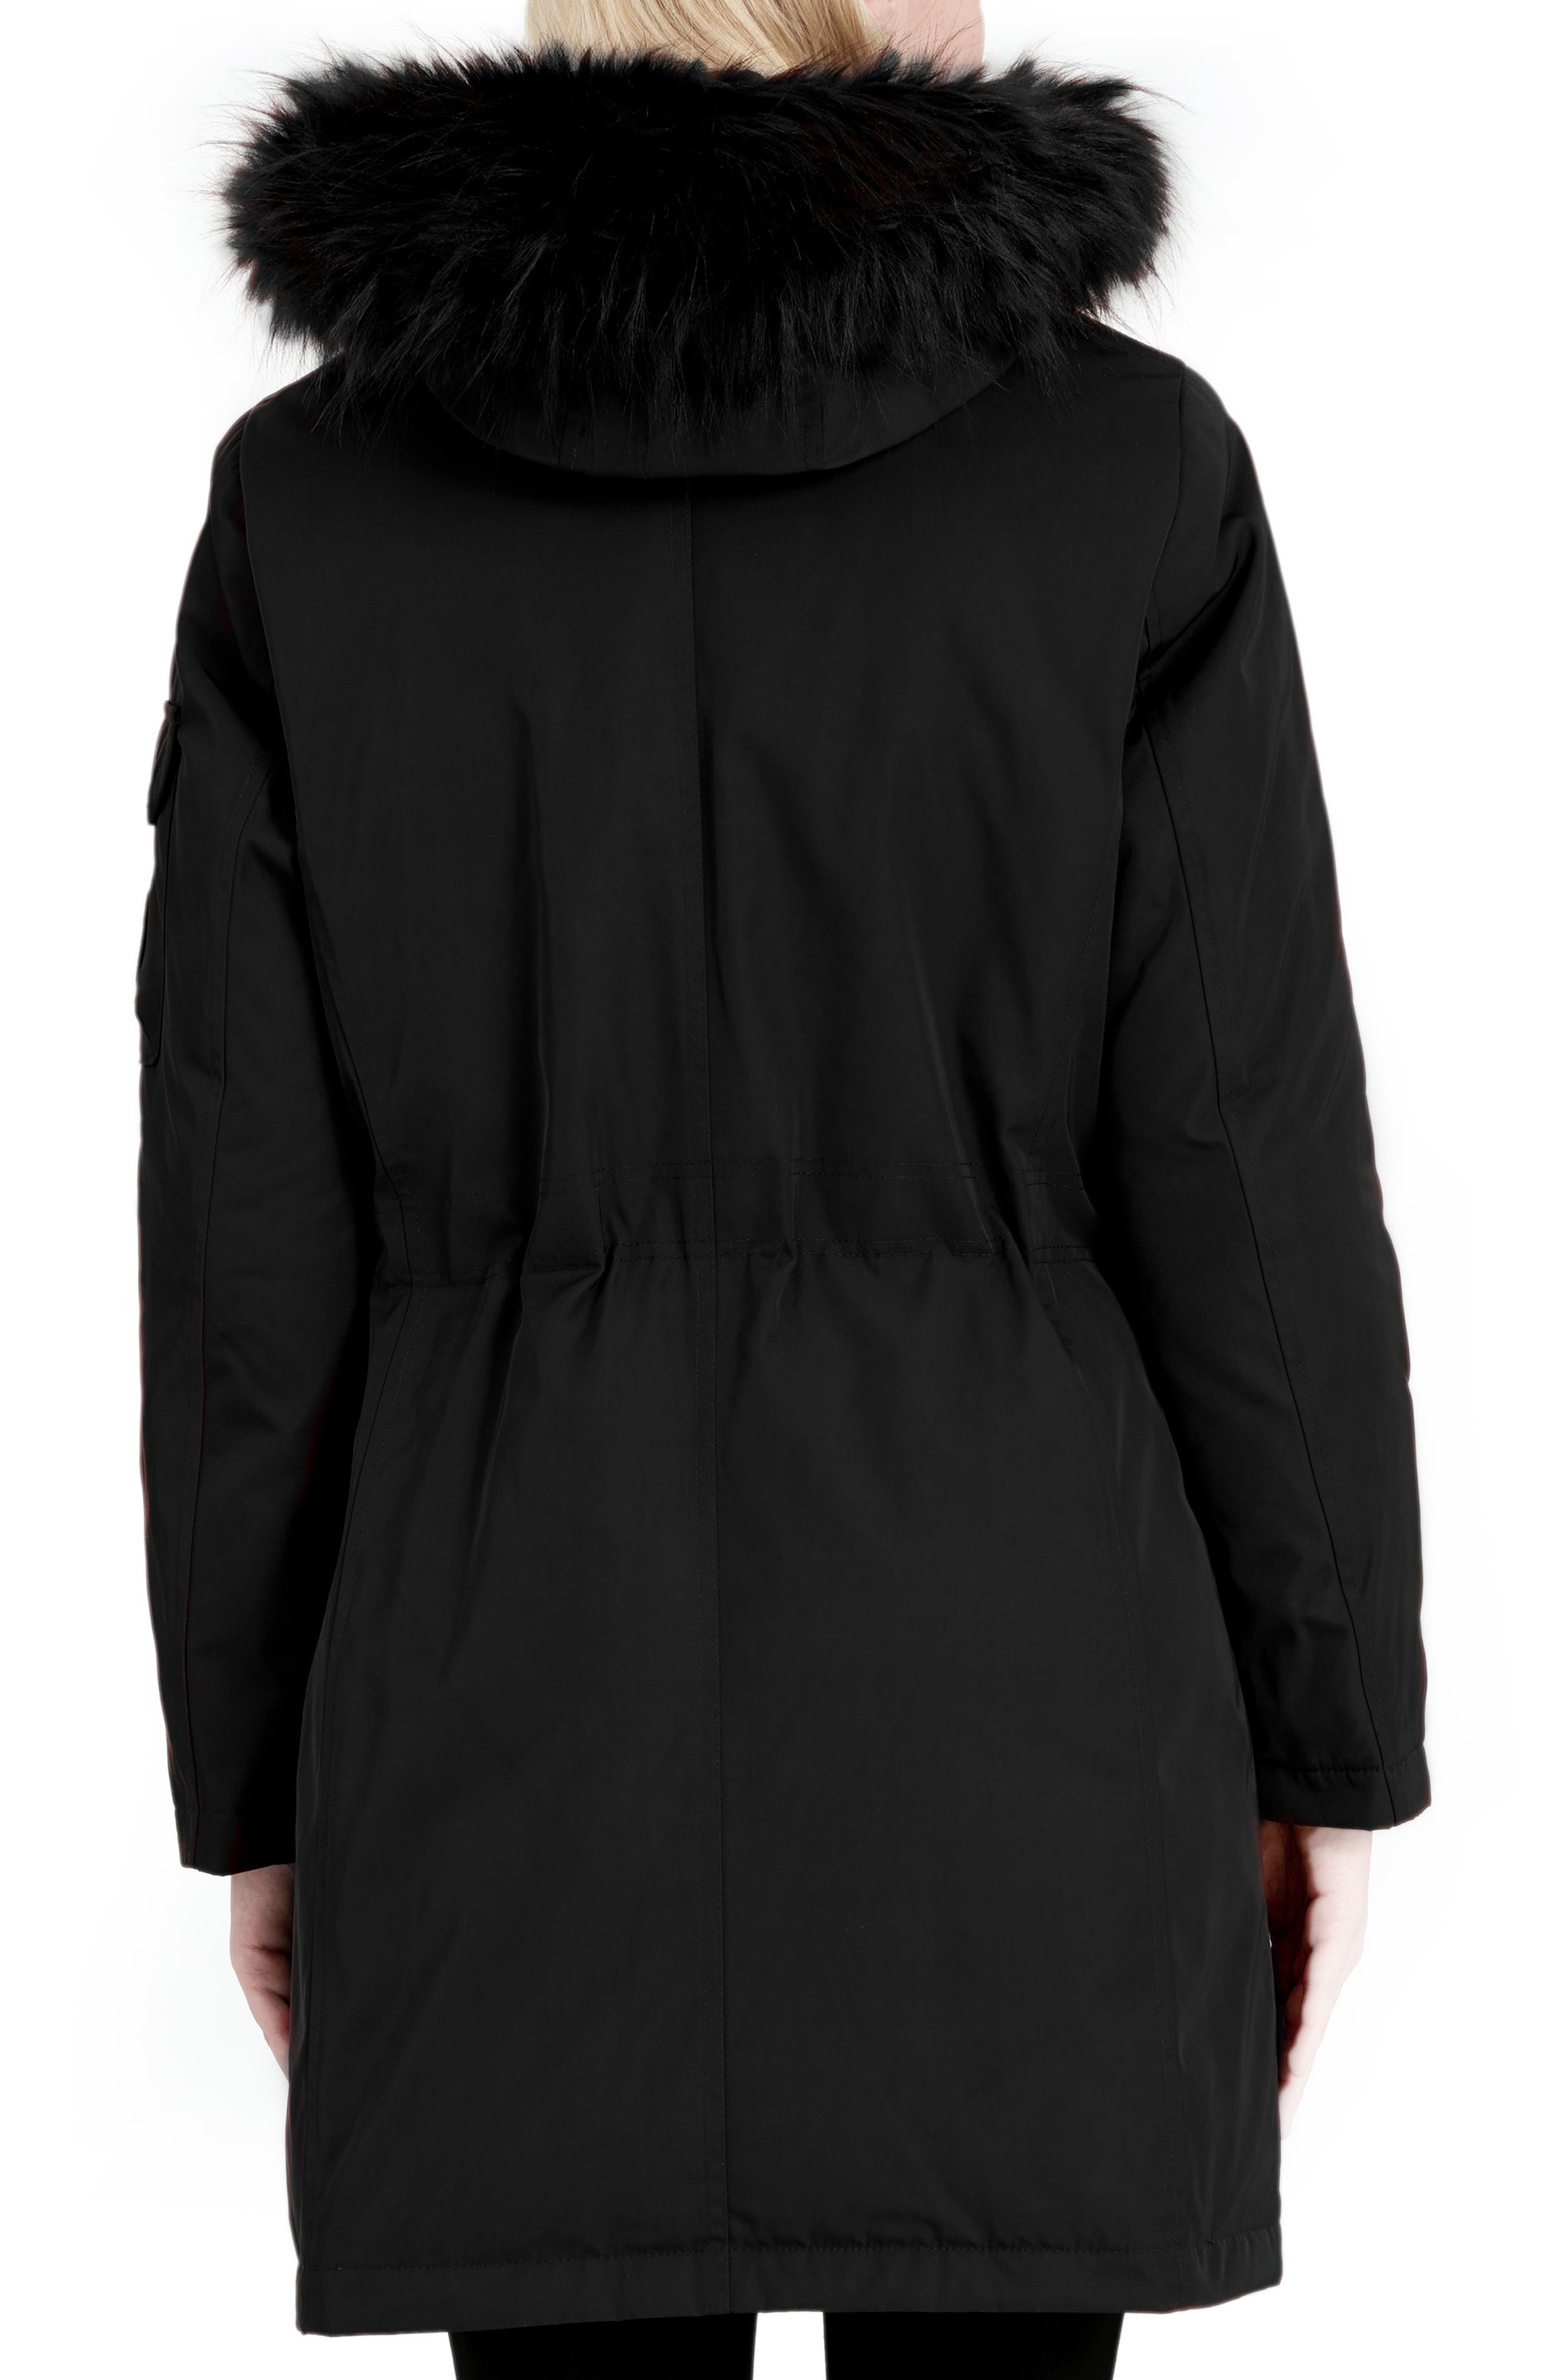 Expedition Hooded Down Parka with Faux Fur Trim,                             Alternate thumbnail 2, color,                             001